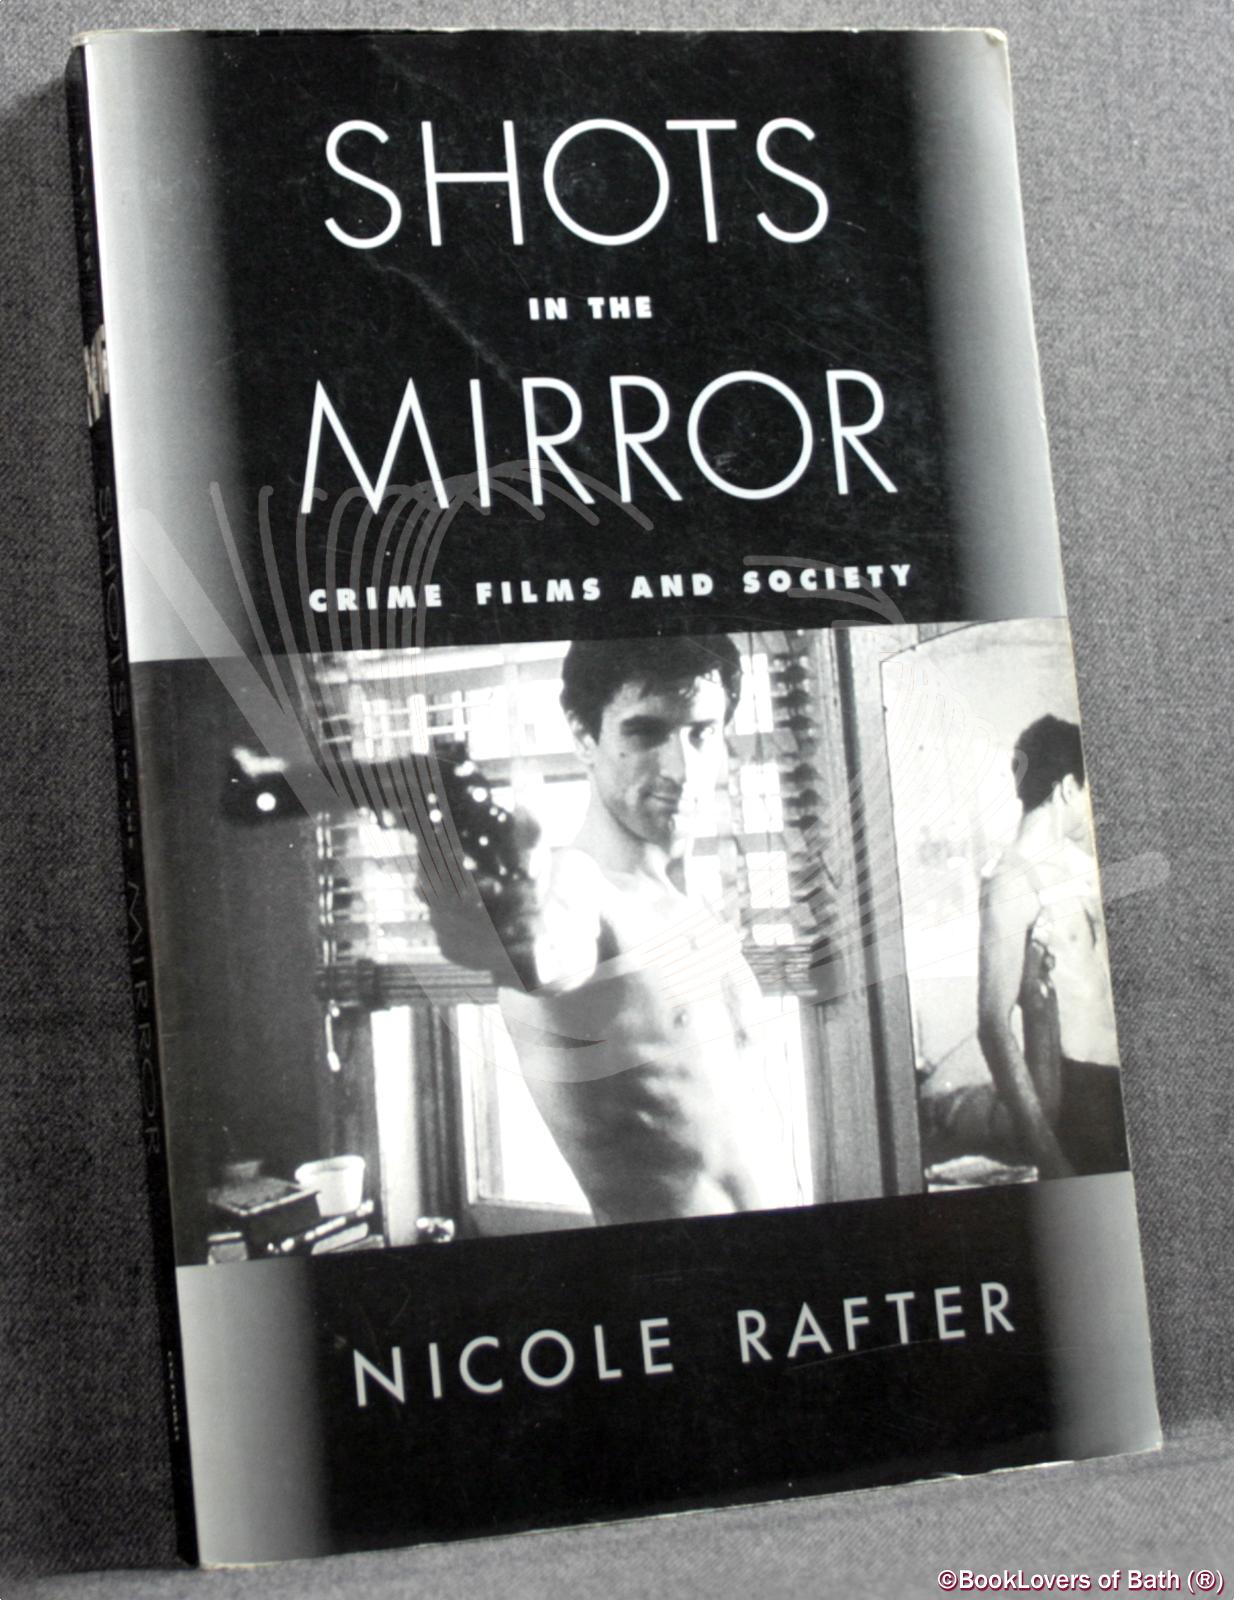 Shots in the Mirror: Crime Films and Society - Nicole Rafter